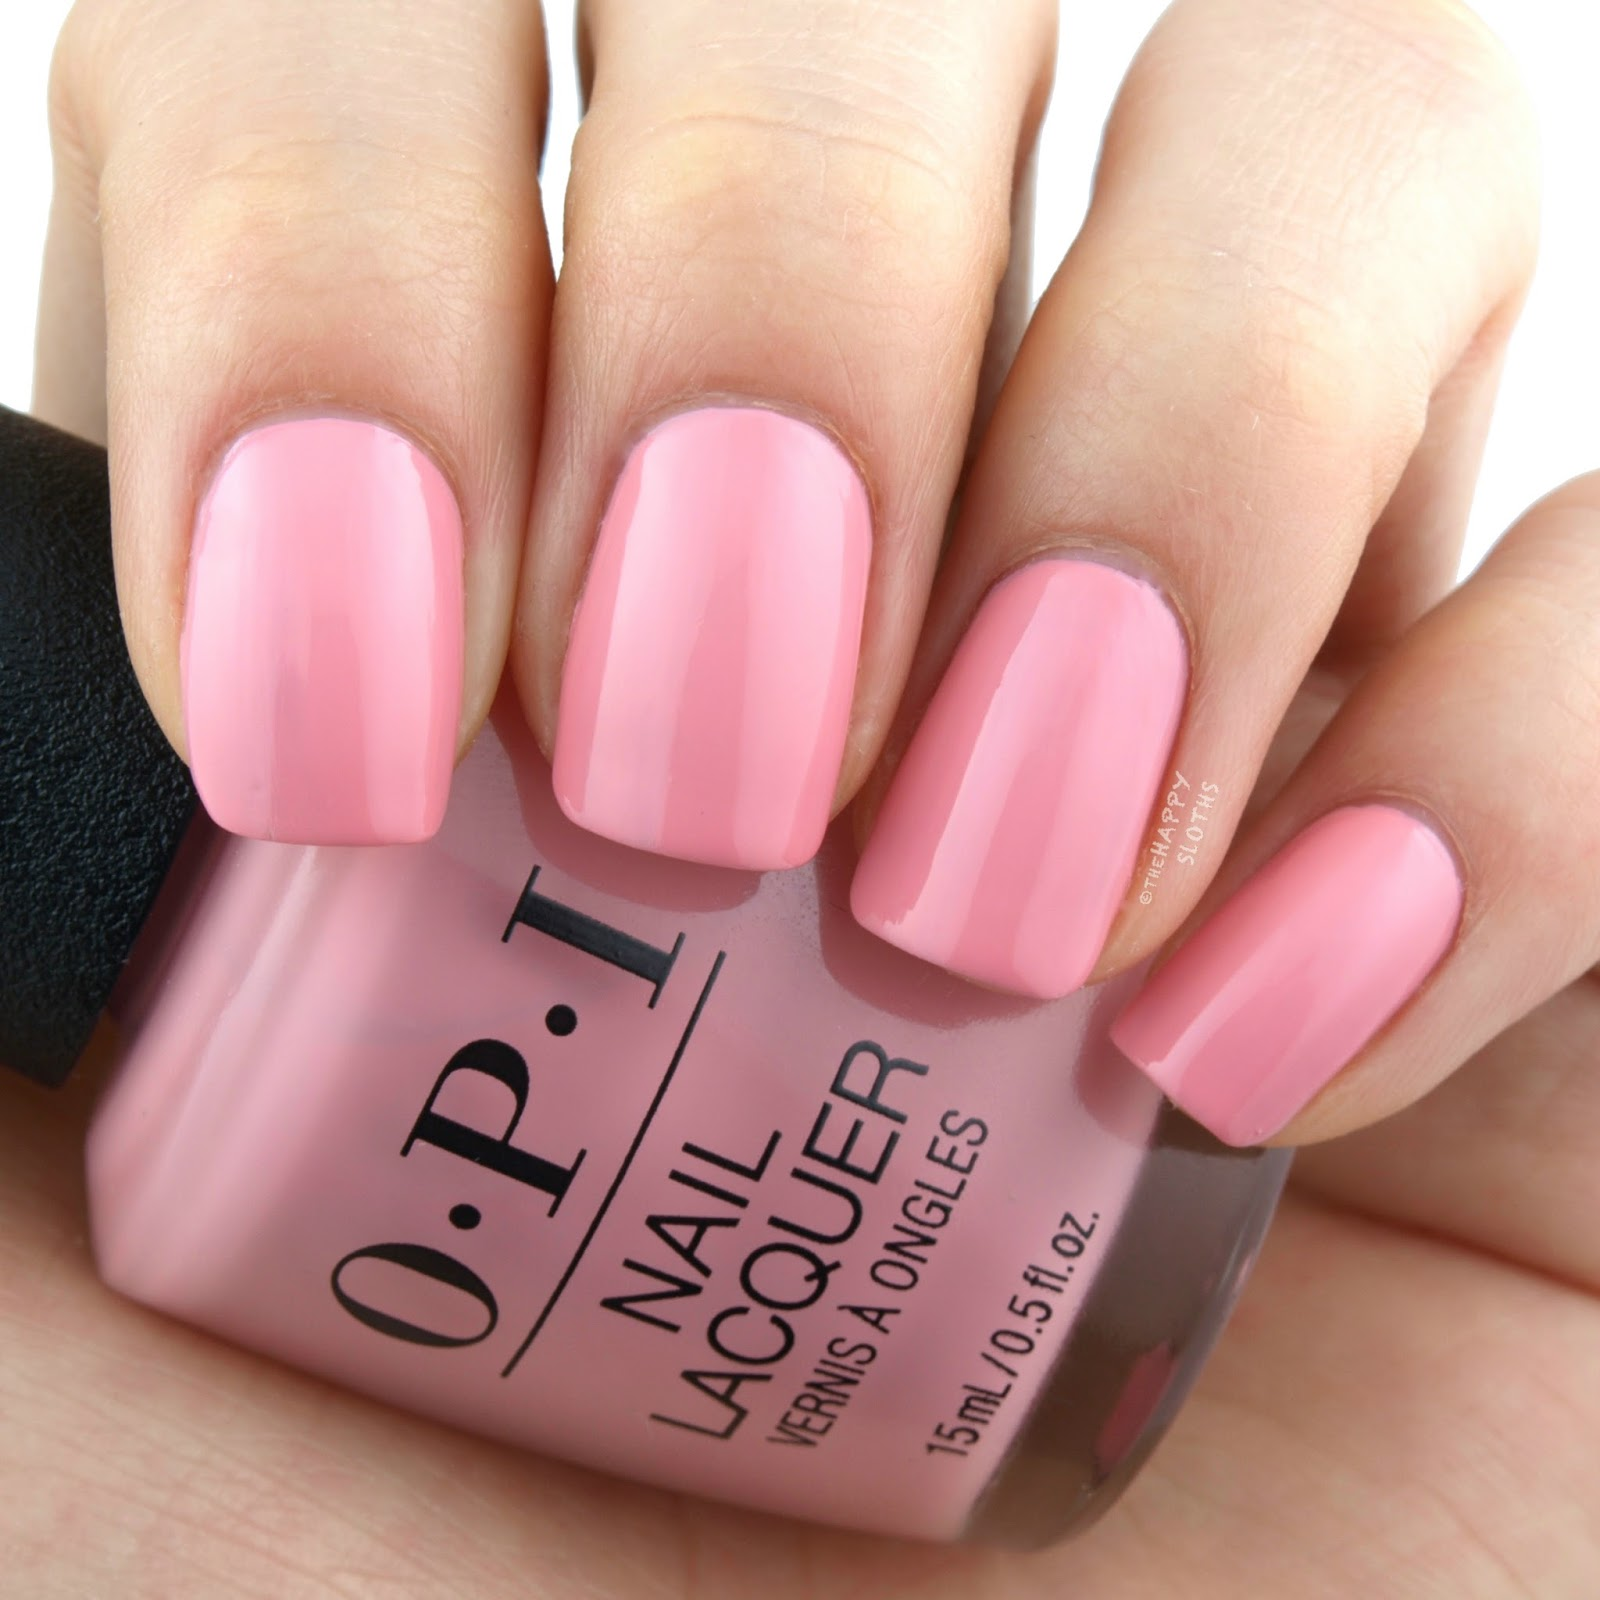 OPI Grease Collection | Pink Ladies Rule the School: Review and Swatches